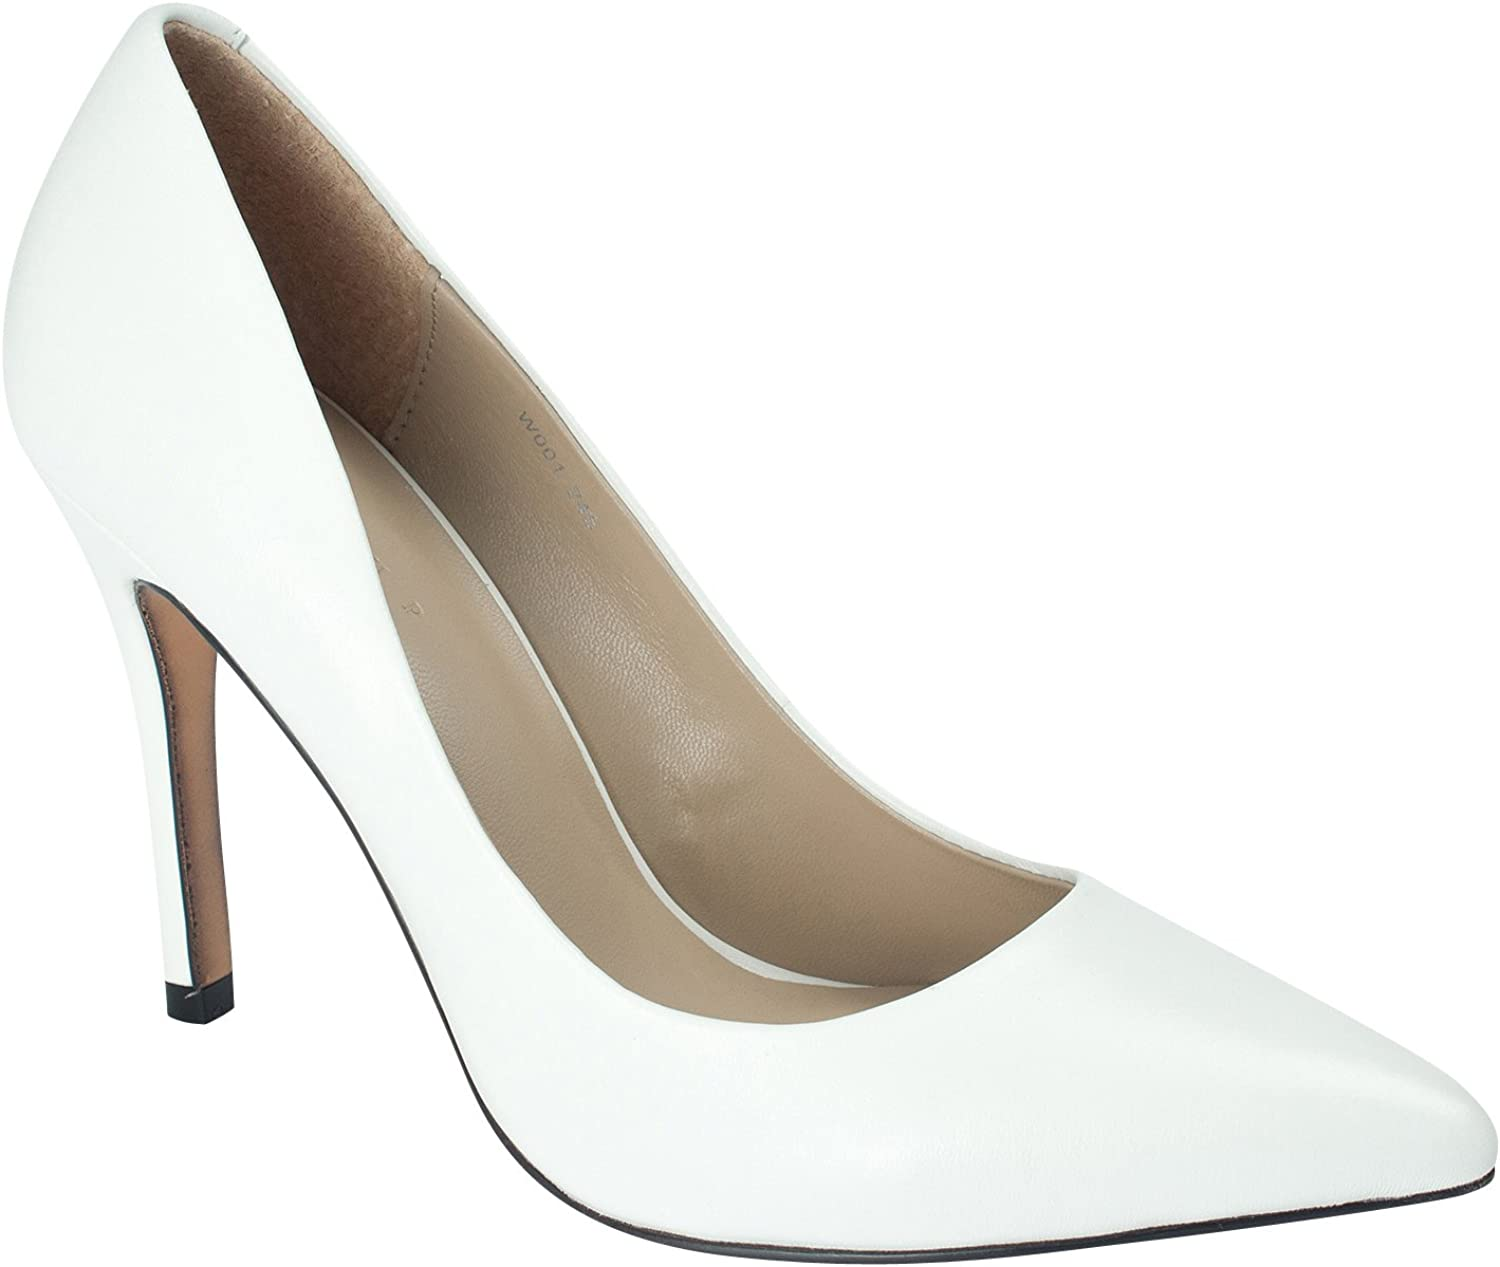 AnnaKastle 100mm Stiletto Heel Womens Genuine Leather Pointy Toe Pumps Dress shoes